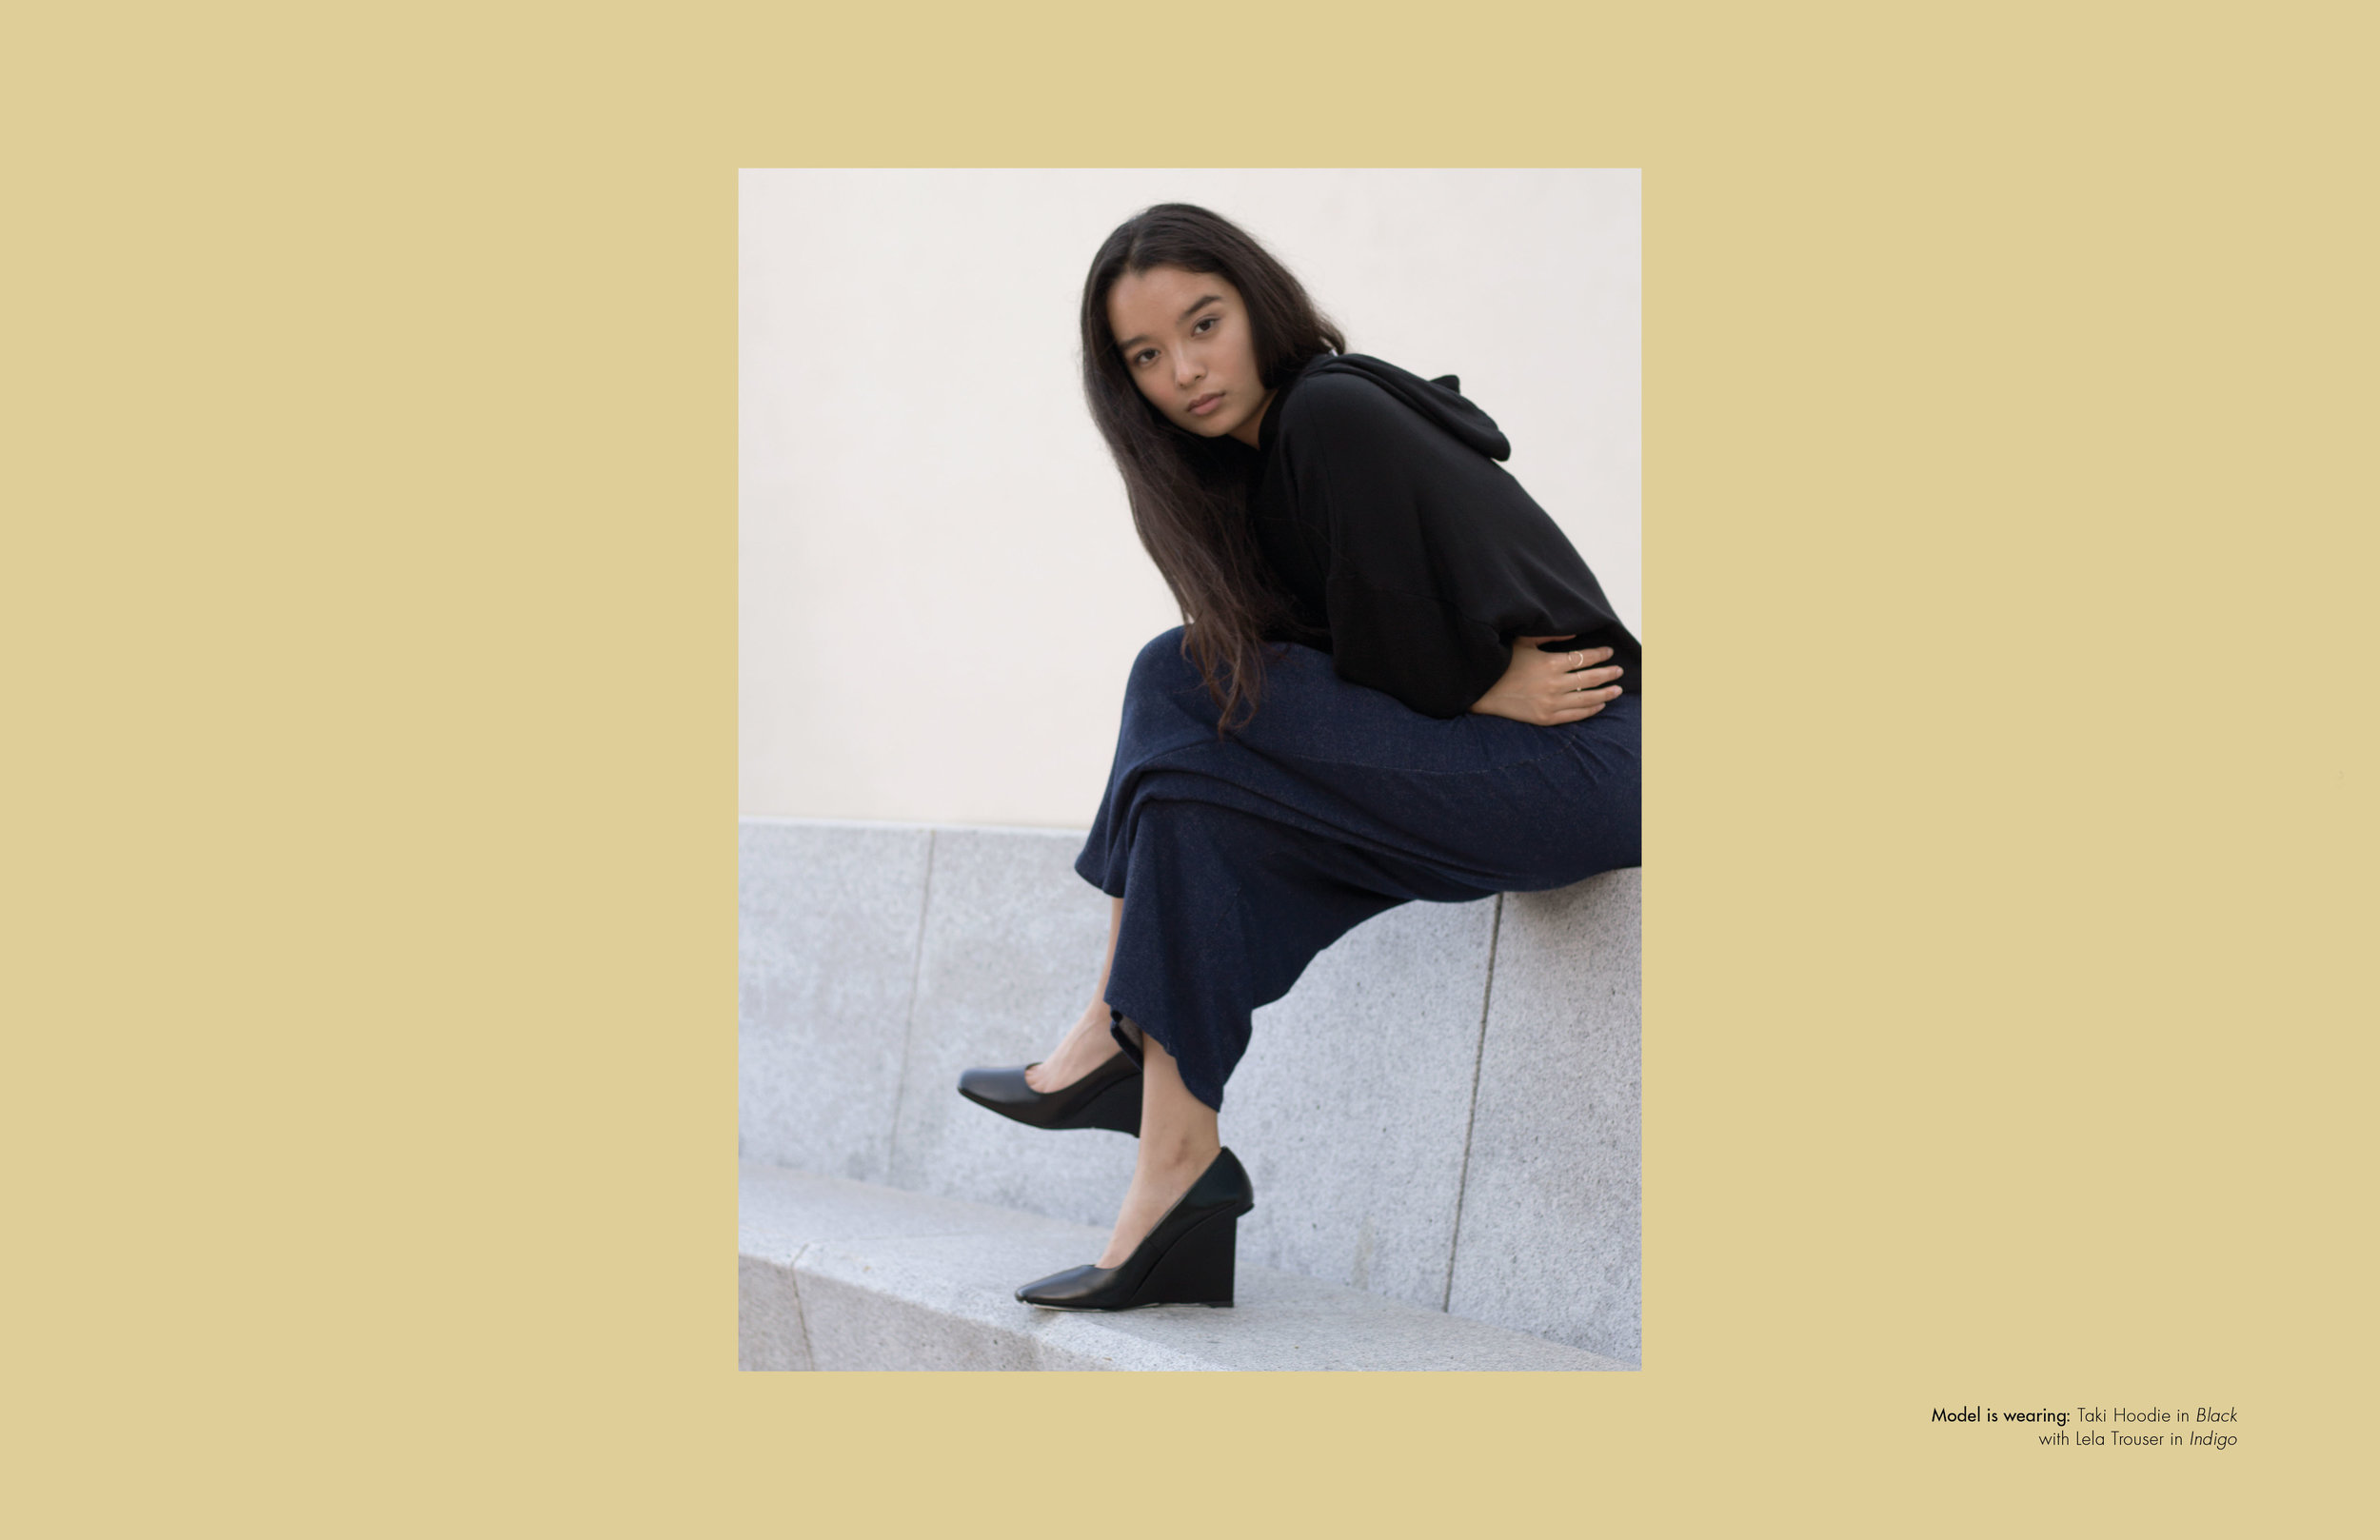 Corinne_Collection_FW17_Annie_Nguyen_Special_Project_Page14.jpg